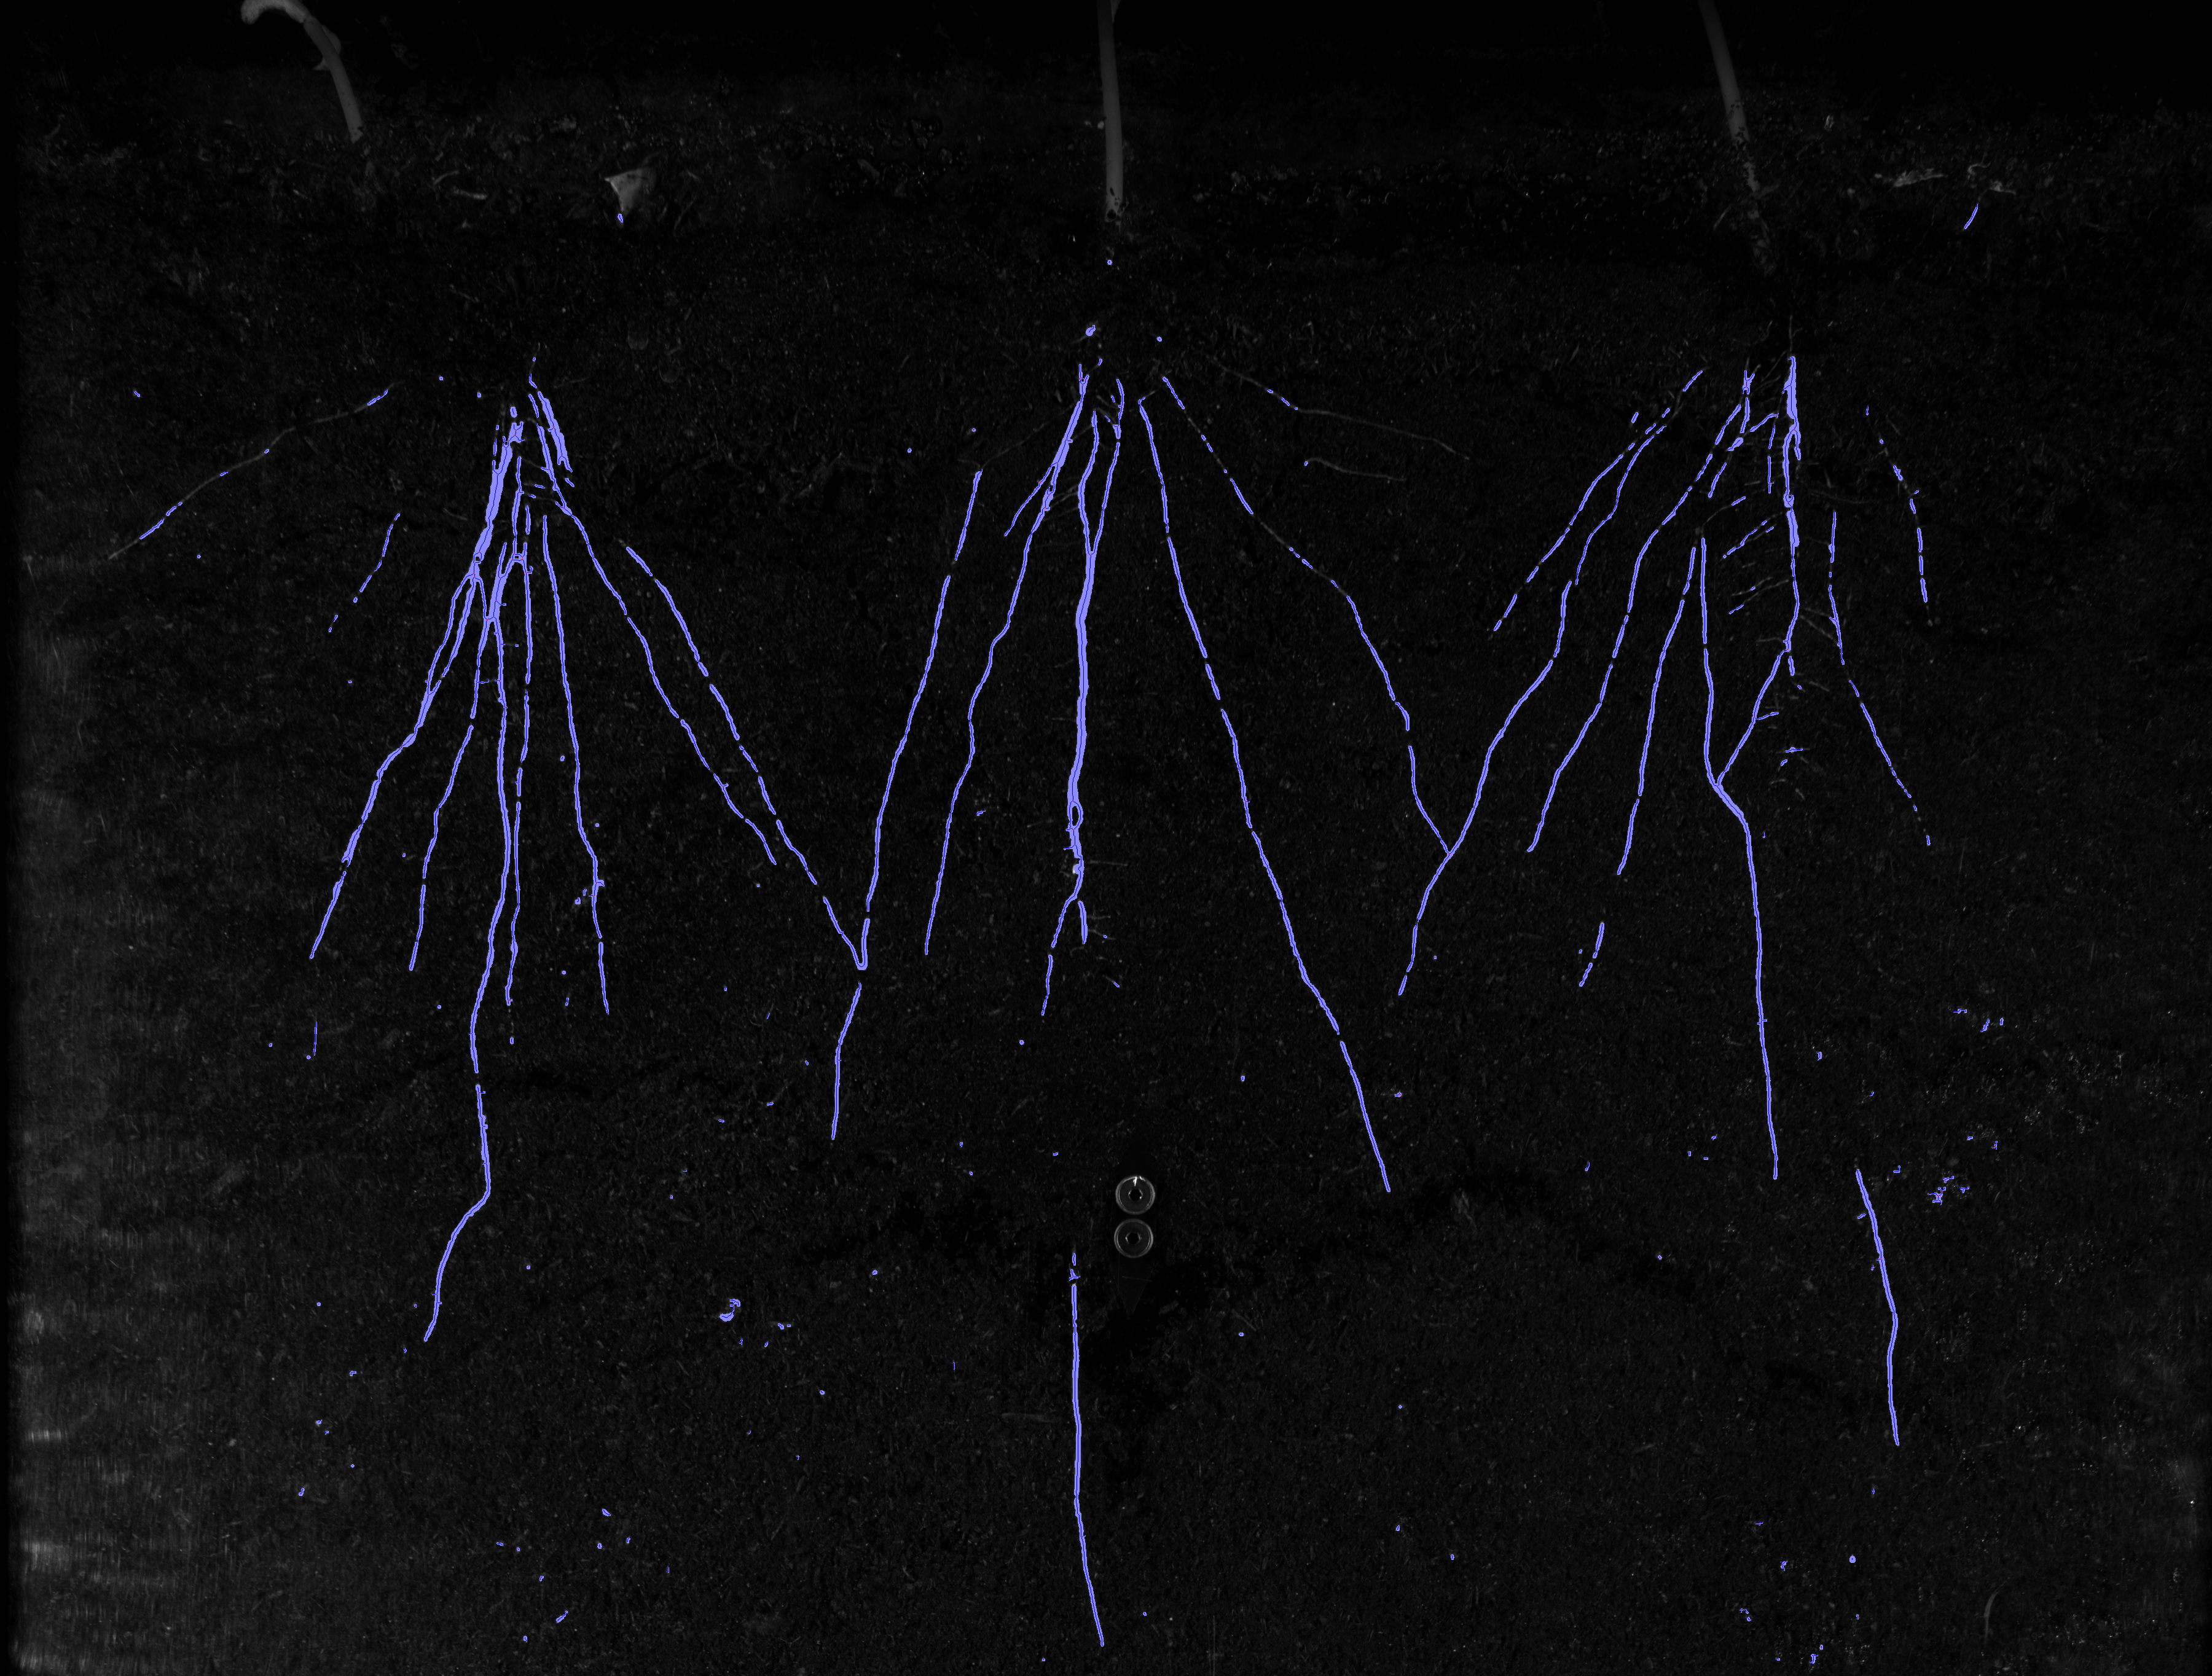 Roots in Rhizotron at Growscreen Rhizo anaylsed with LemnaTec Software